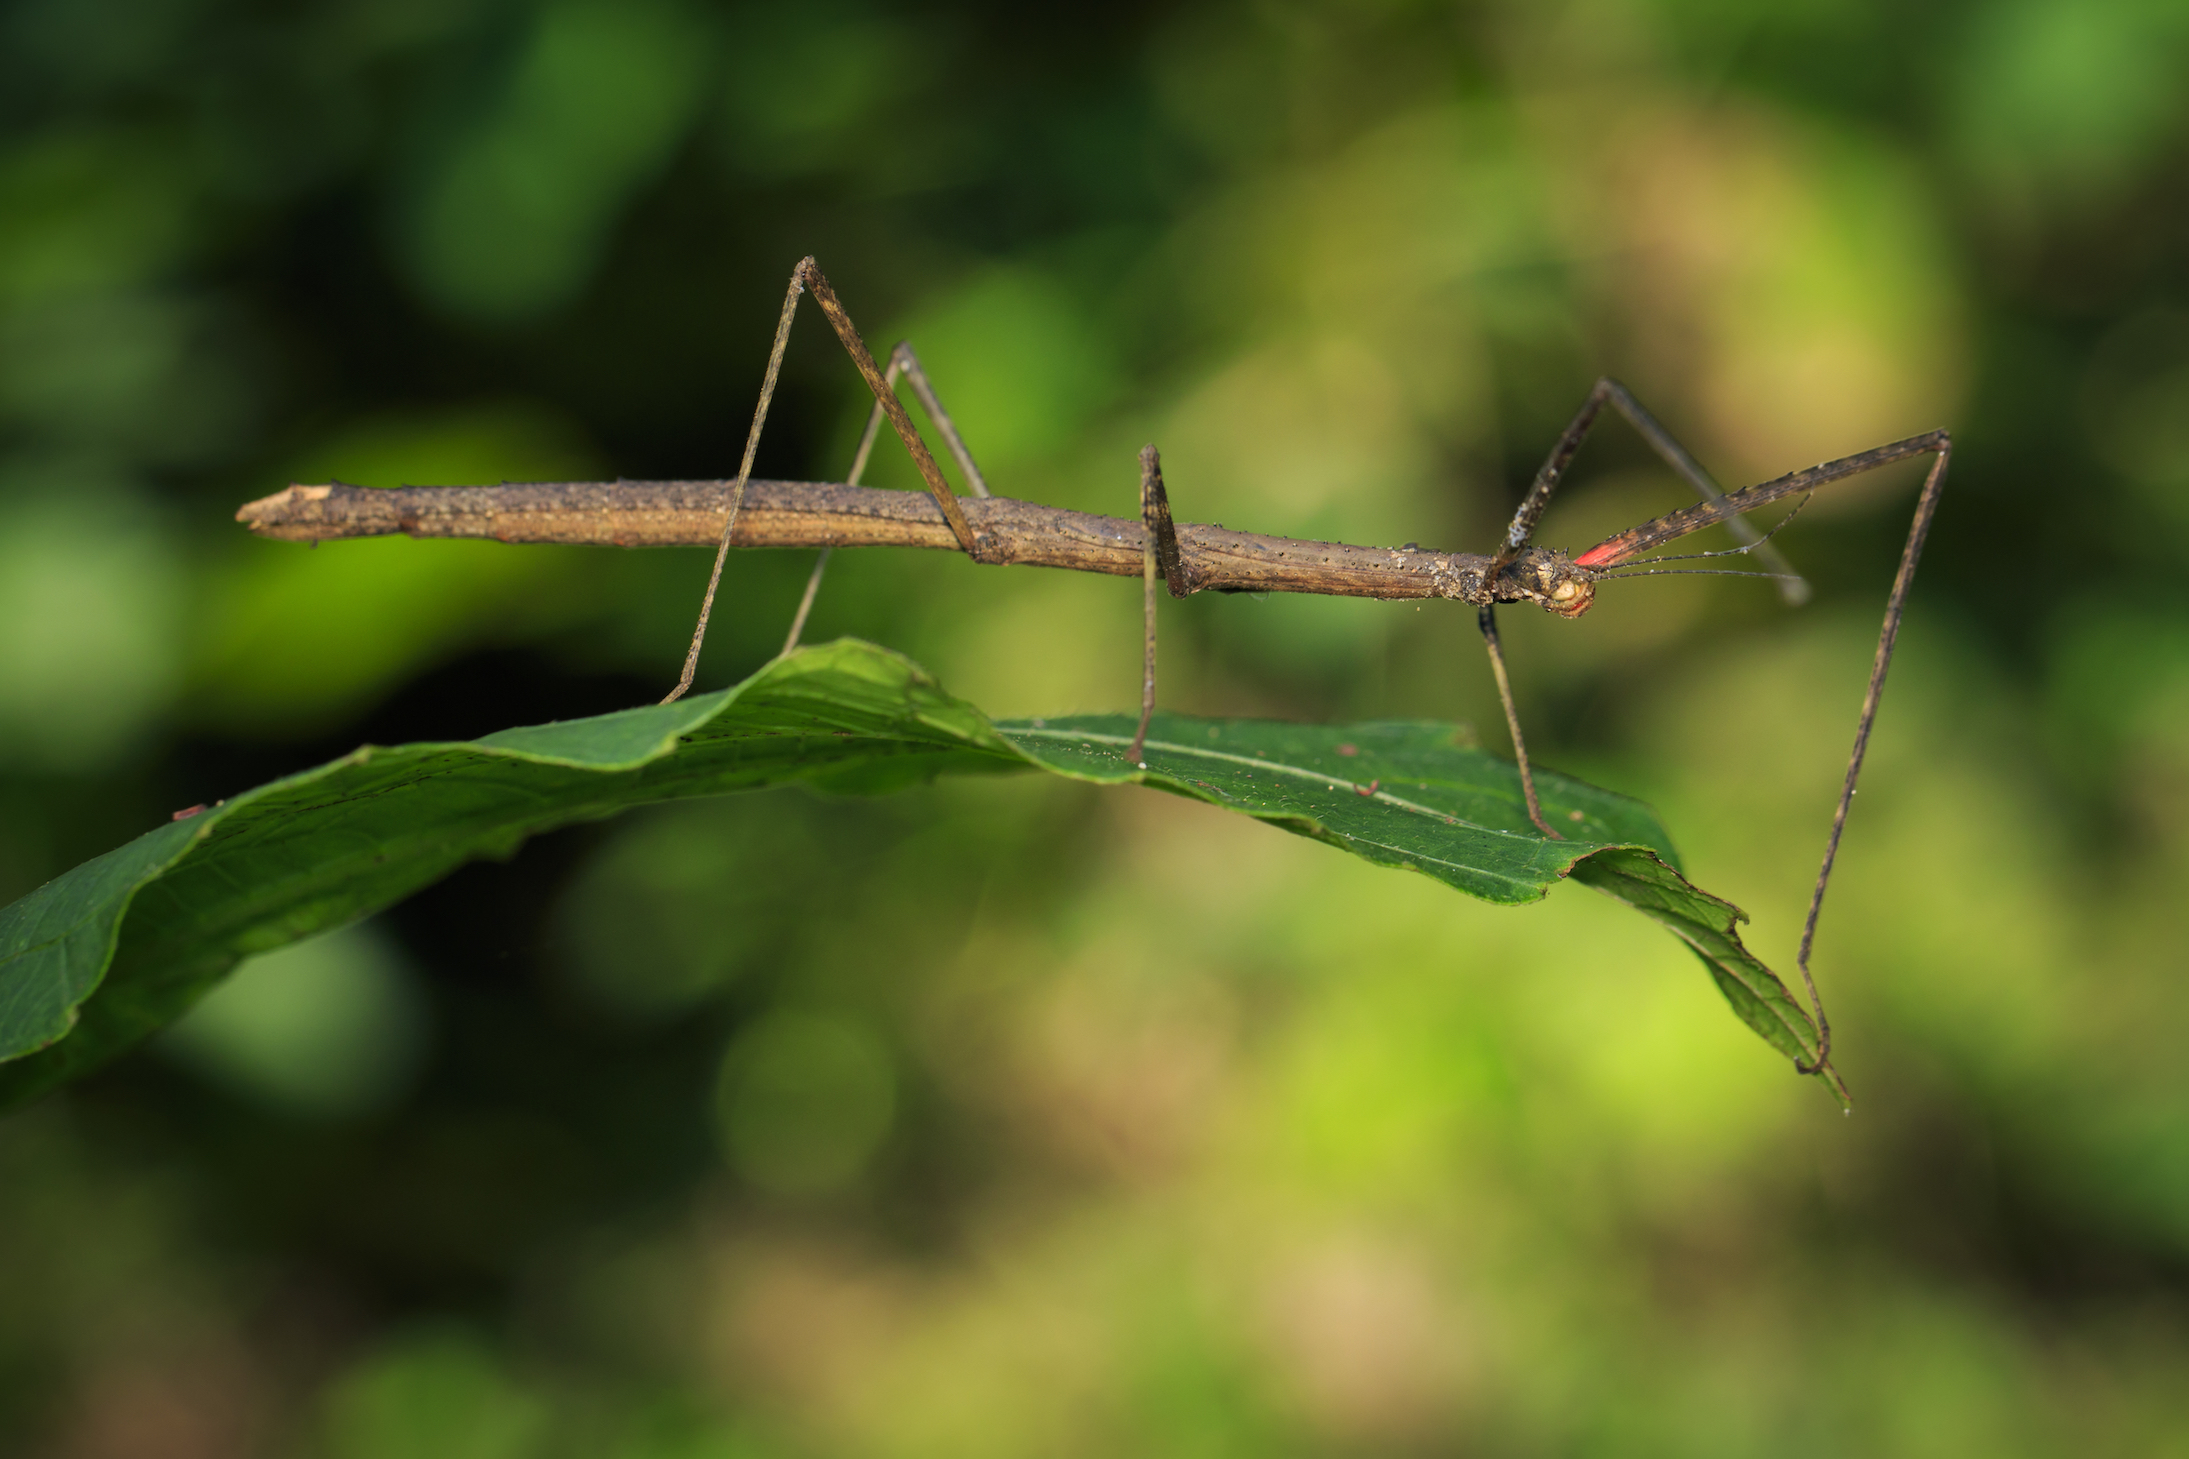 An investigation by researchers at Kobe University has revealed that some insect eggs can still hatch after being swallowed by a bird. The eggs of stick insects, for example, are hard enough to pass through a bird without being digested.